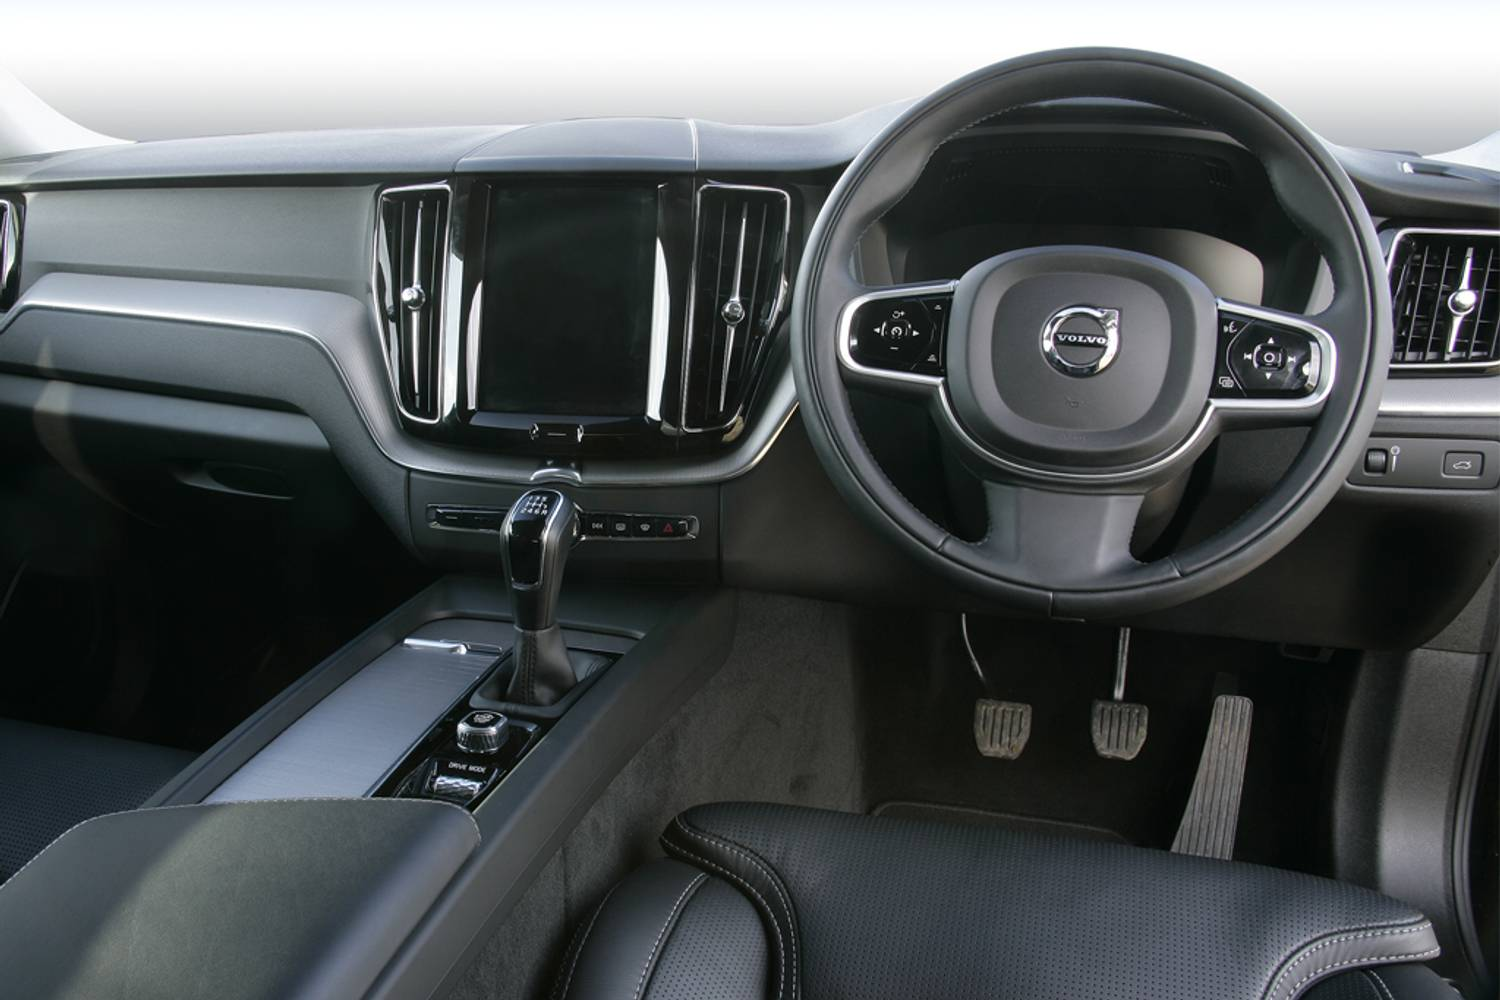 Volvo XC60 Estate 2.0 5dr interior